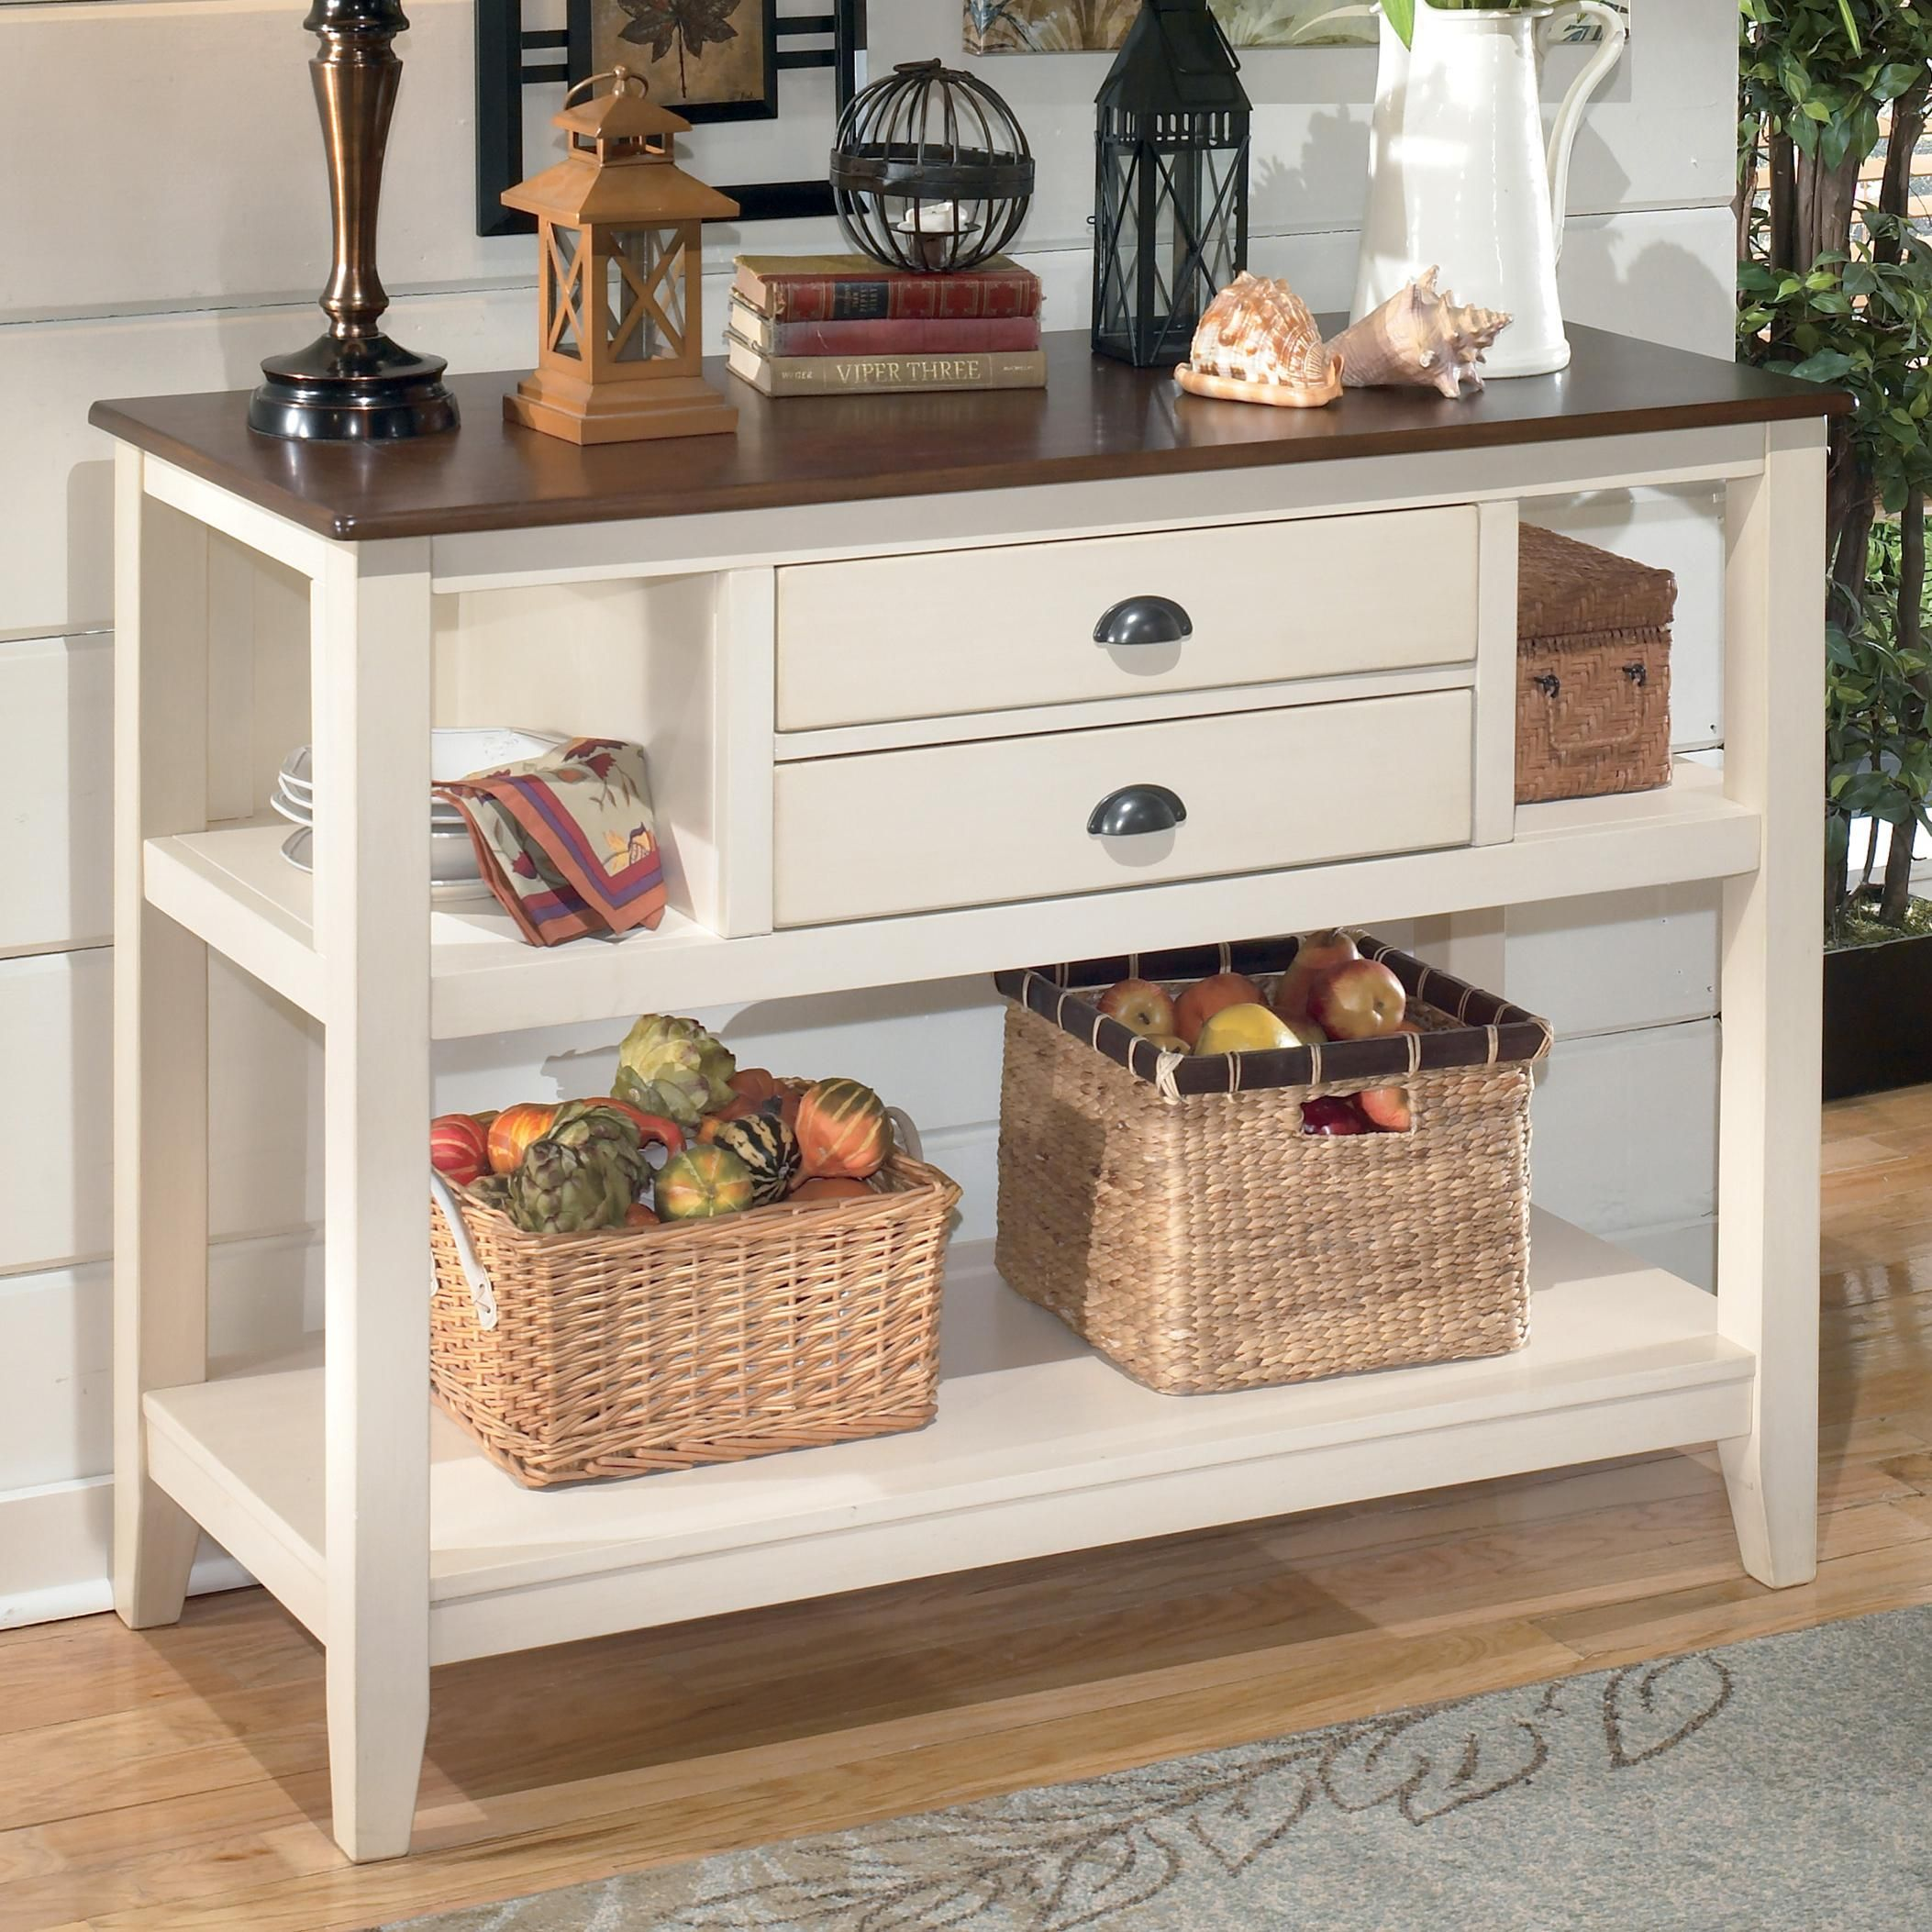 Great Description   Dimensions   More Info Ashley Furniture Whitesburg Dining  Room Server With The Warm Two Tone Look Of The Cottage White And Burnished  Brown ...